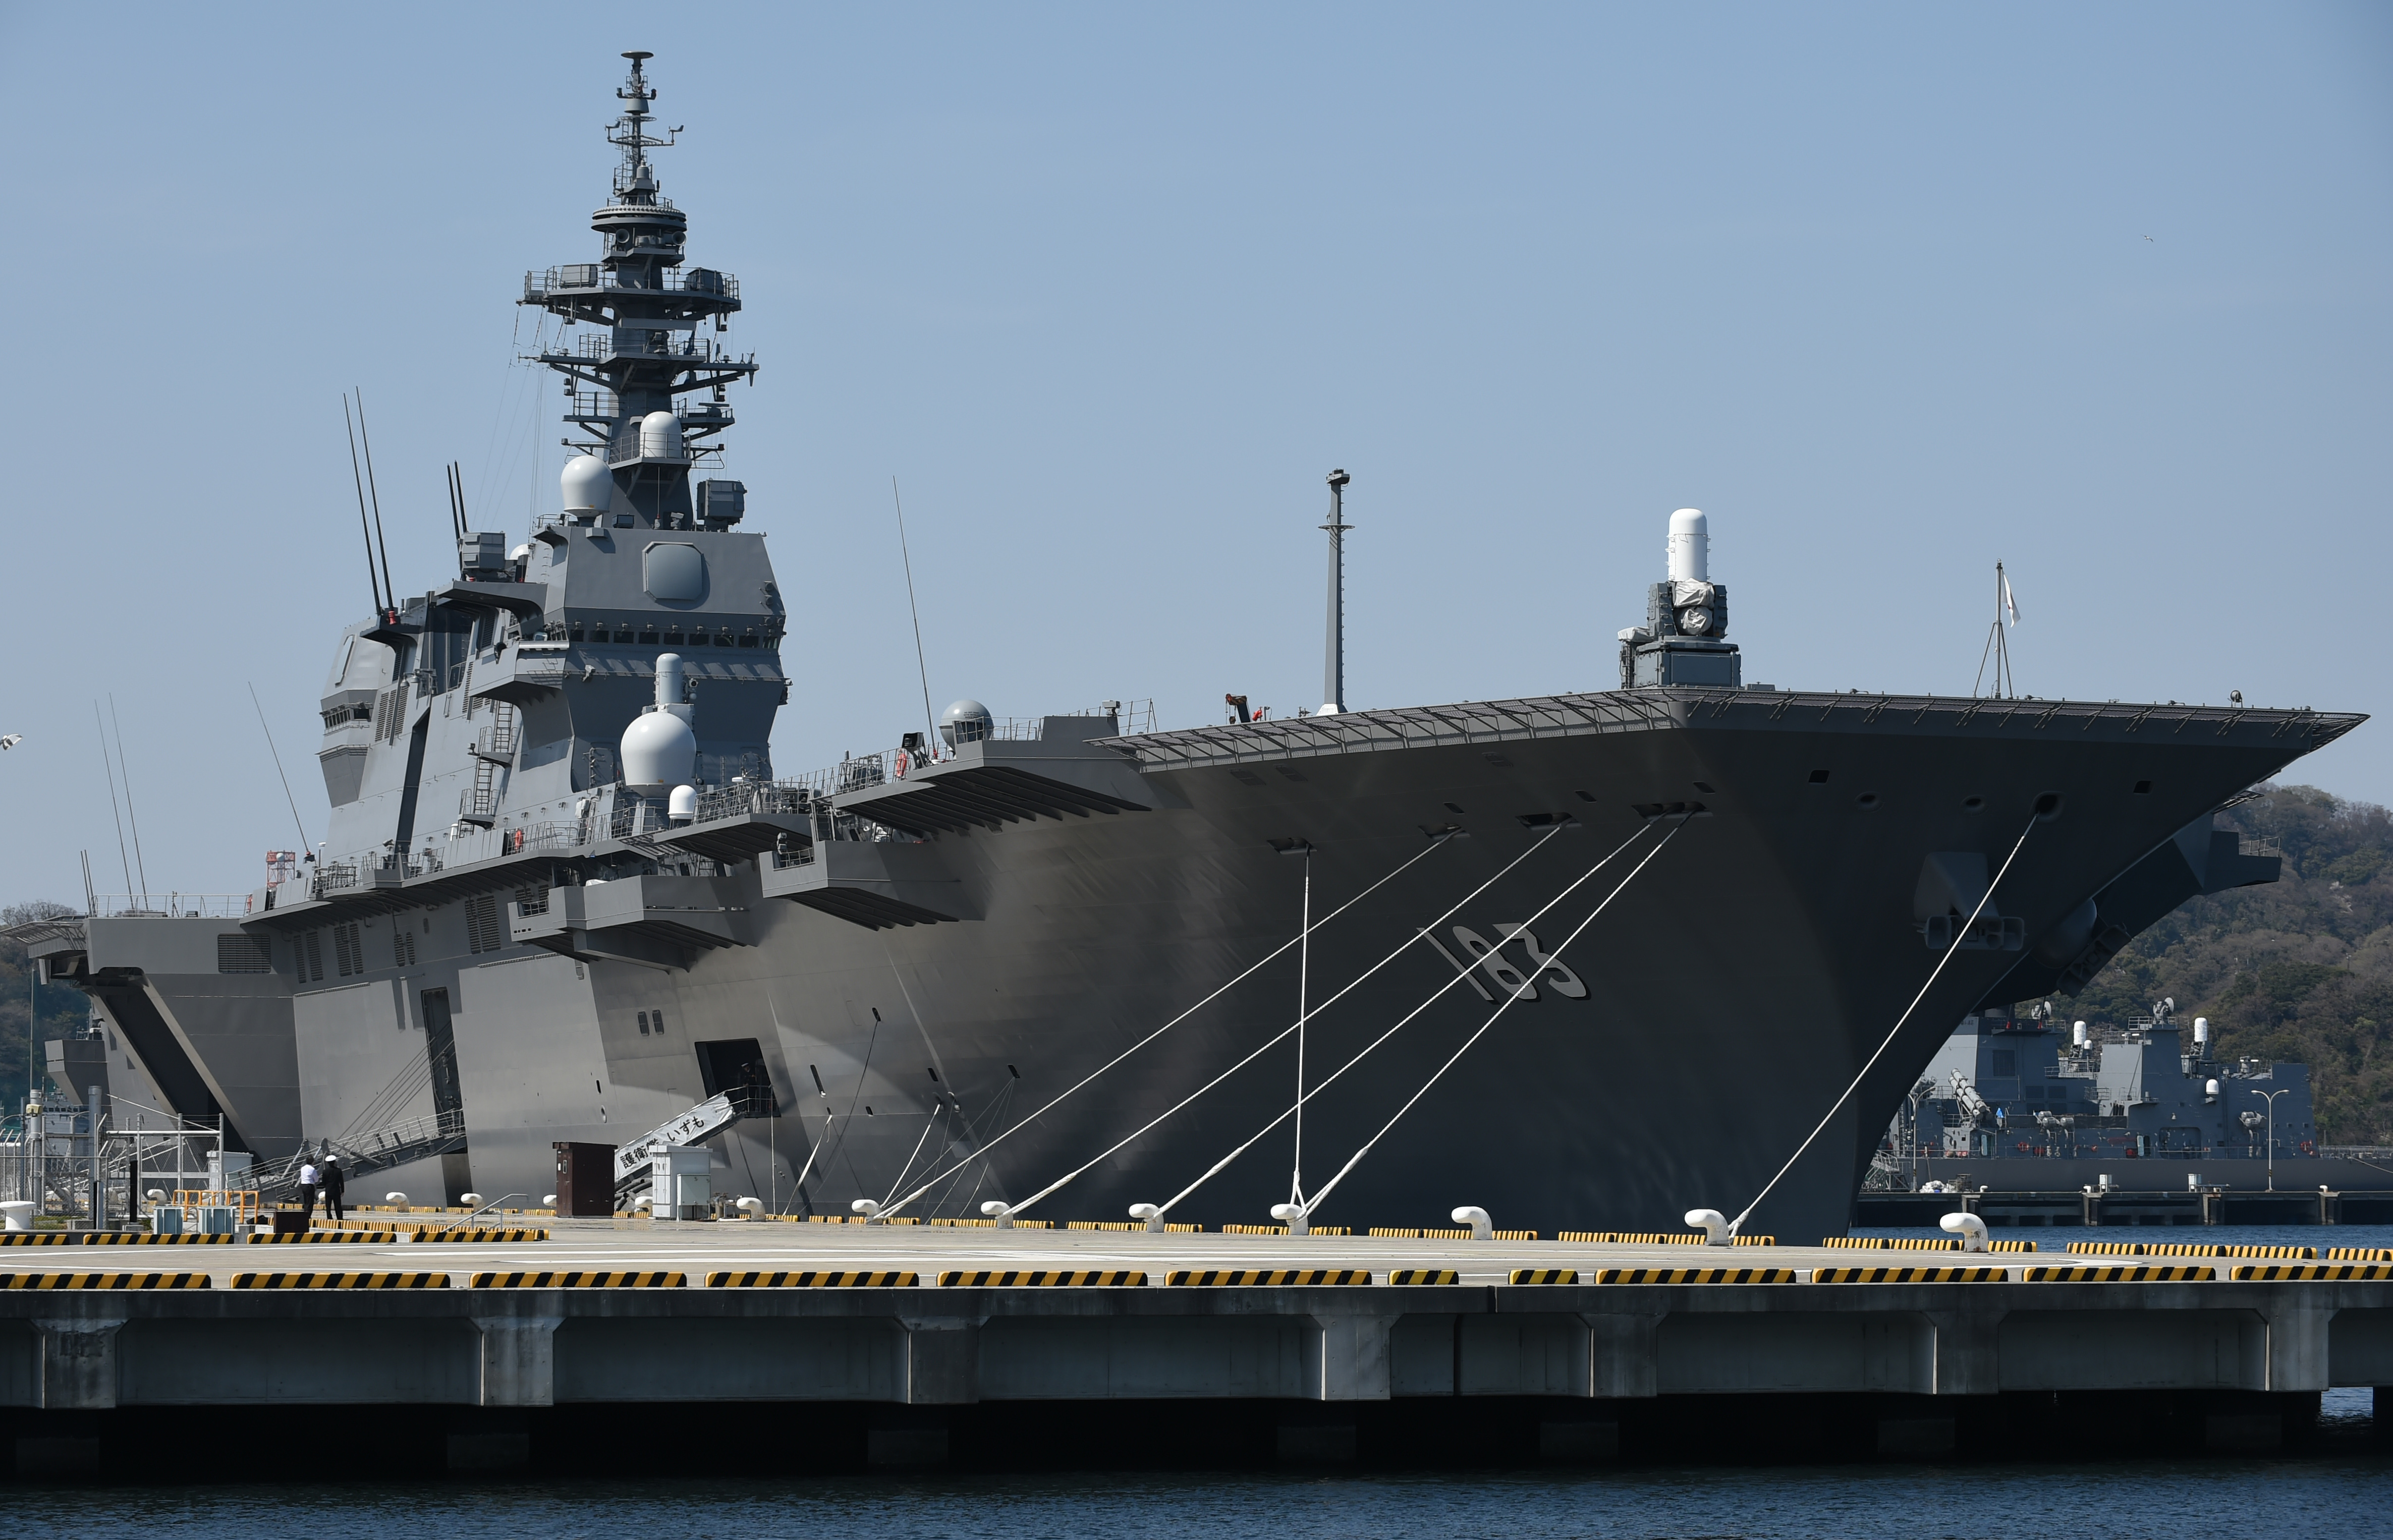 Japan Maritime Self Defense Forces' latest helicopter destroyer Izumo anchors at its Yokosuka base in Yokosuka on March 31, 2015. The JS Izumo (DDH-183), with a length of 248-meters and displacing 19,500 tons, is the largest vessel procured by the MSDF ever. (Toshifumi Kitamura/AFP)